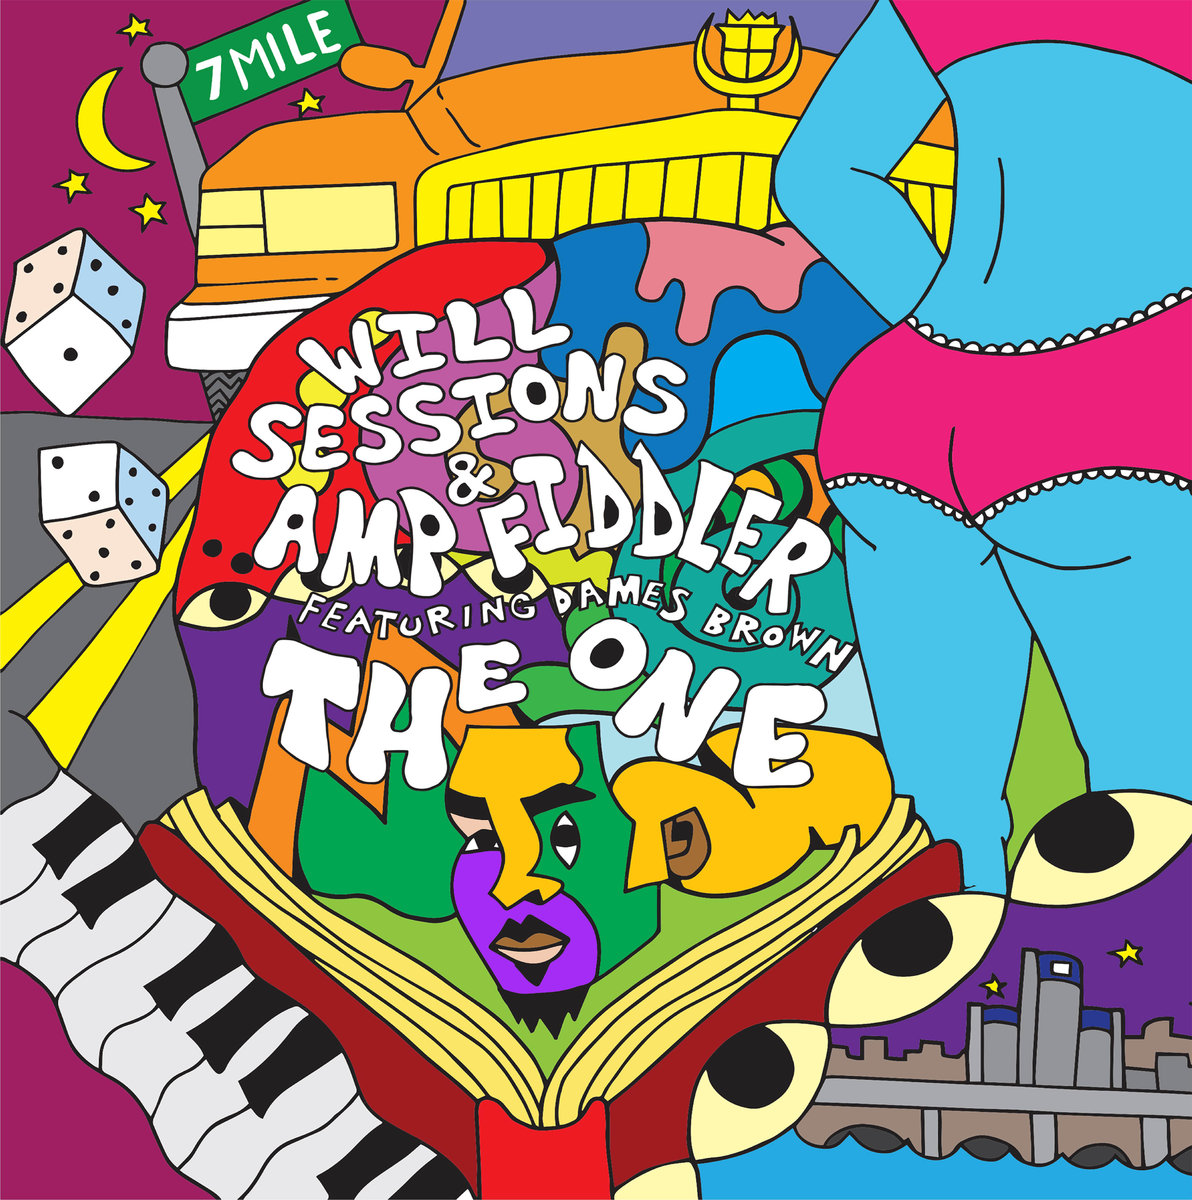 """Album of the Day: Will Sessions & Amp Fiddler ft. Dames Brown, """"The One"""""""